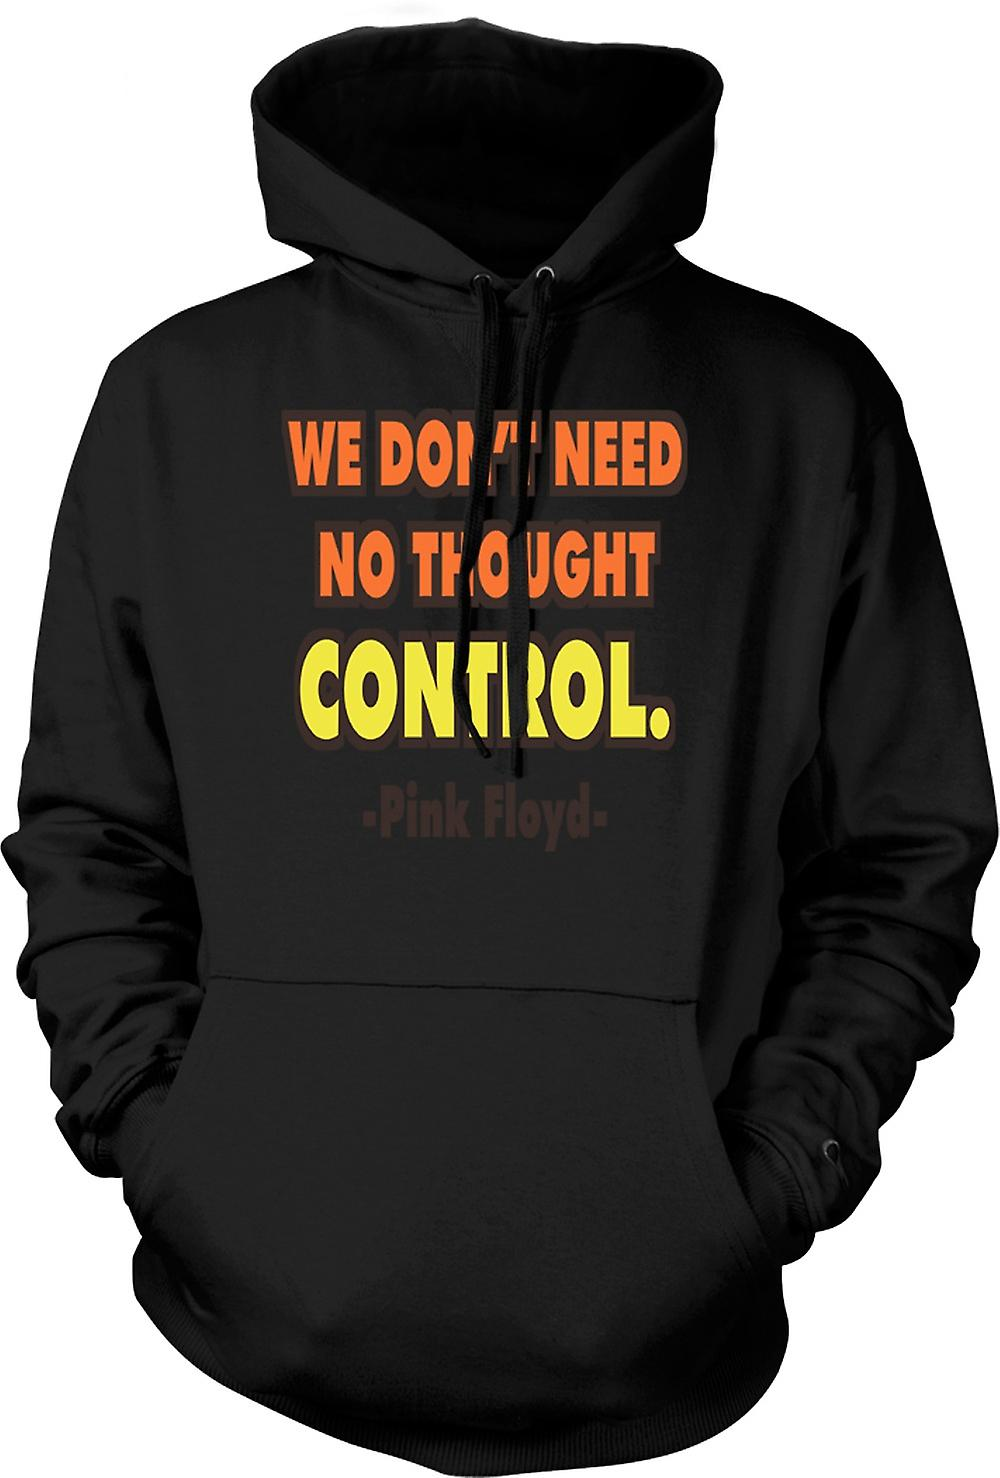 Kids Hoodie - We Don't Need No Thought Control Pink Floyd